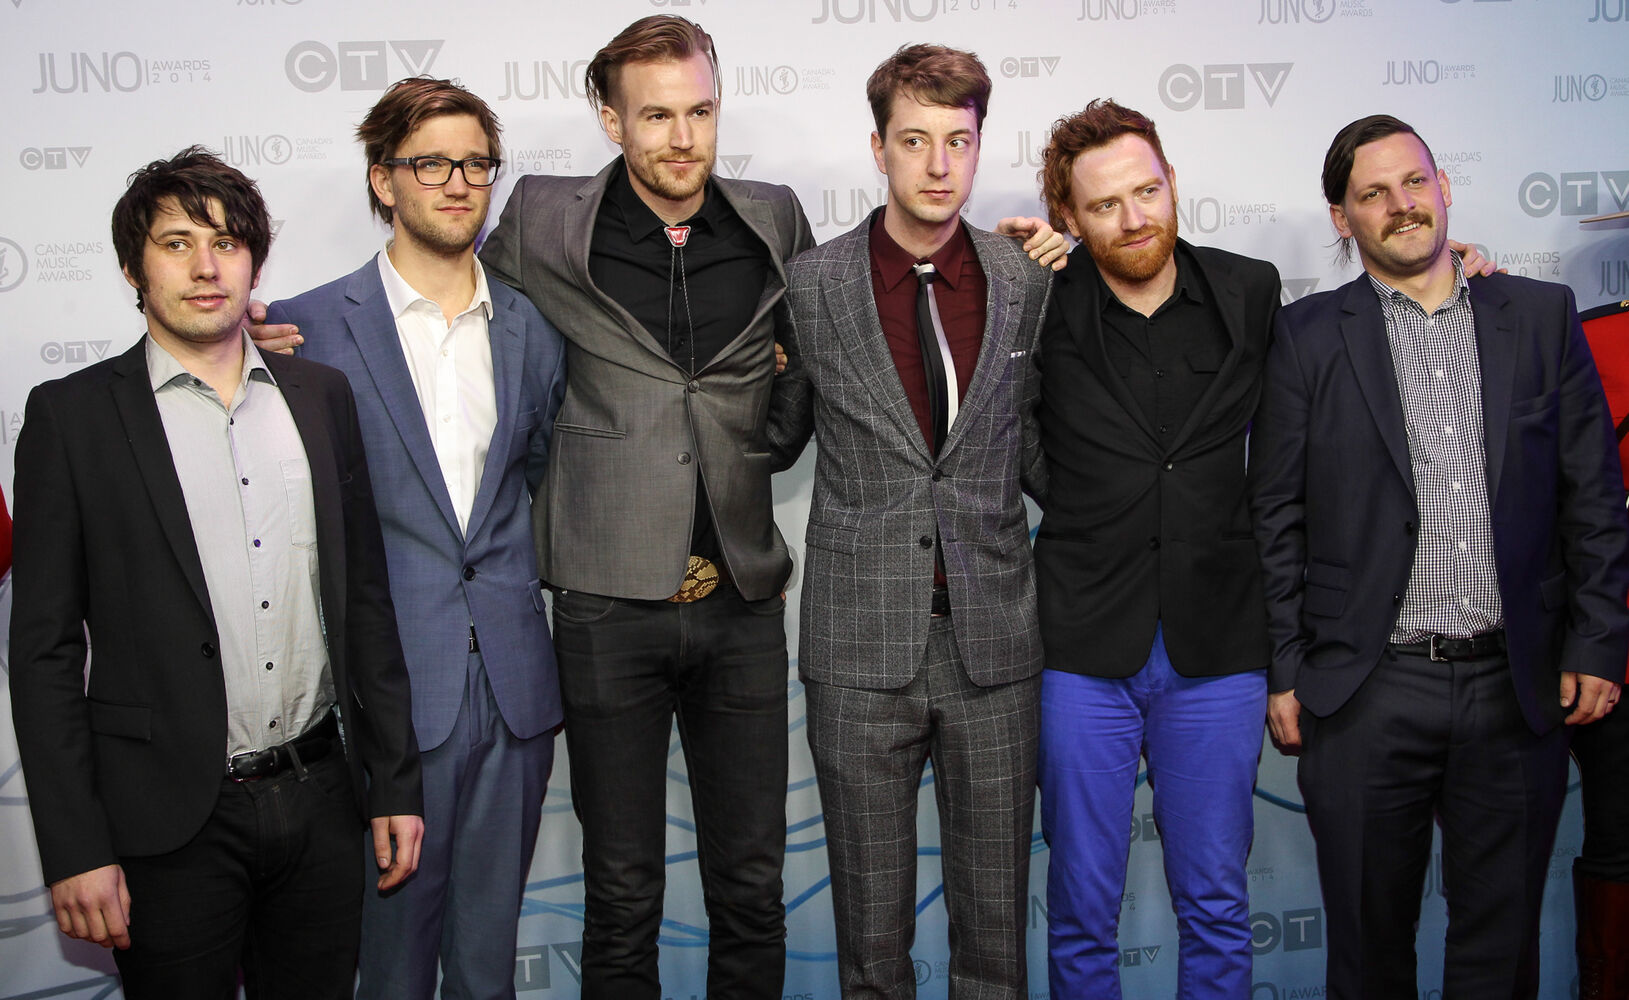 Winnipeg's Royal Canoe on the 2014 Juno Awards red carpet.